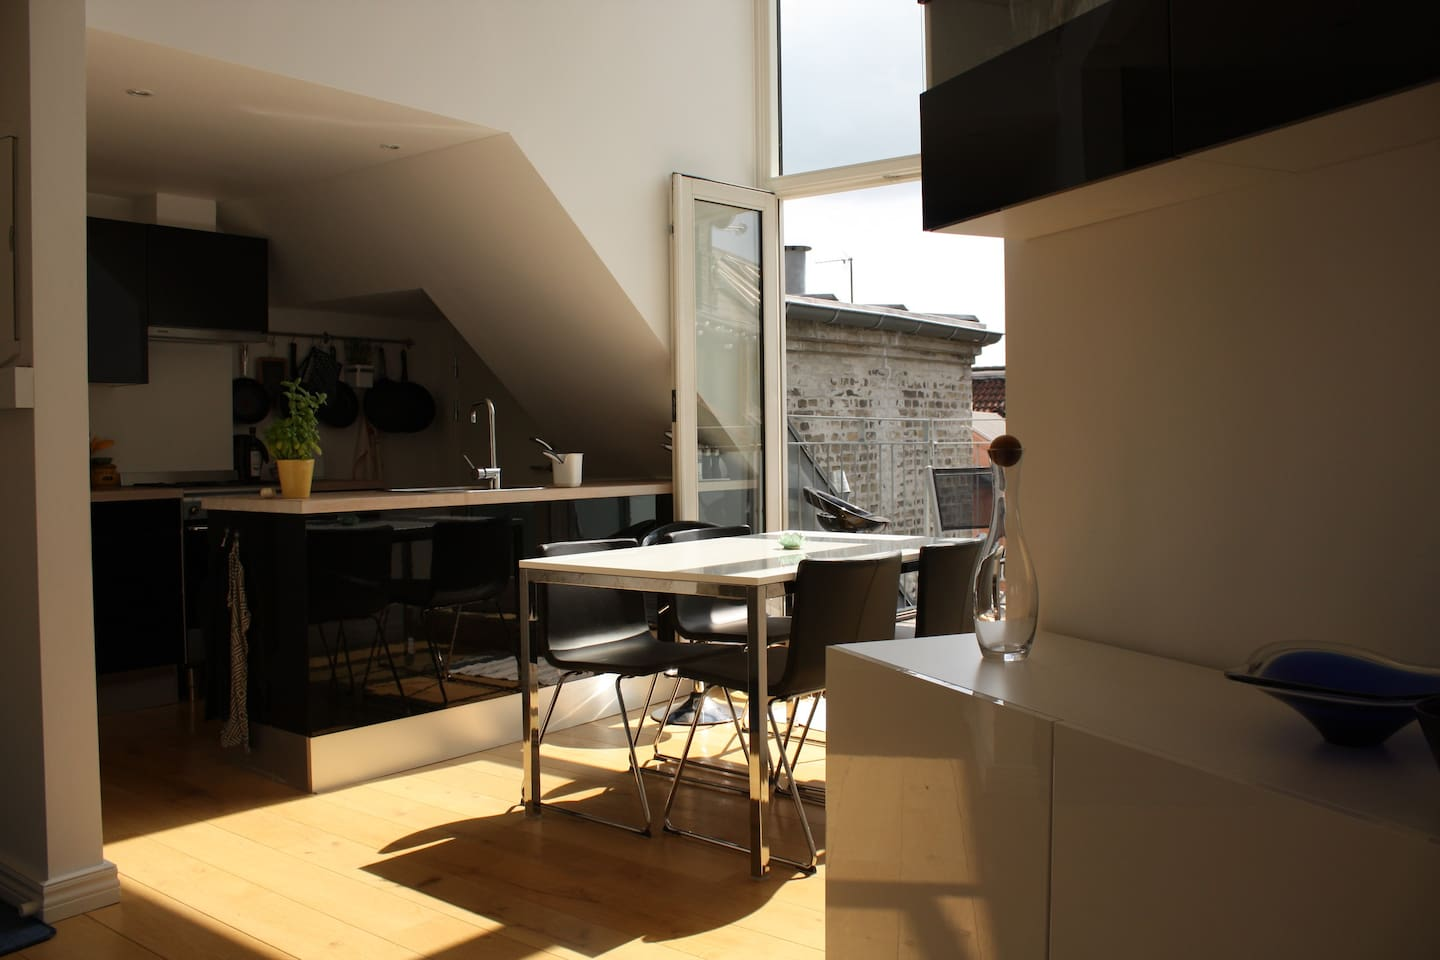 Dining area, kitchen and the main balcony